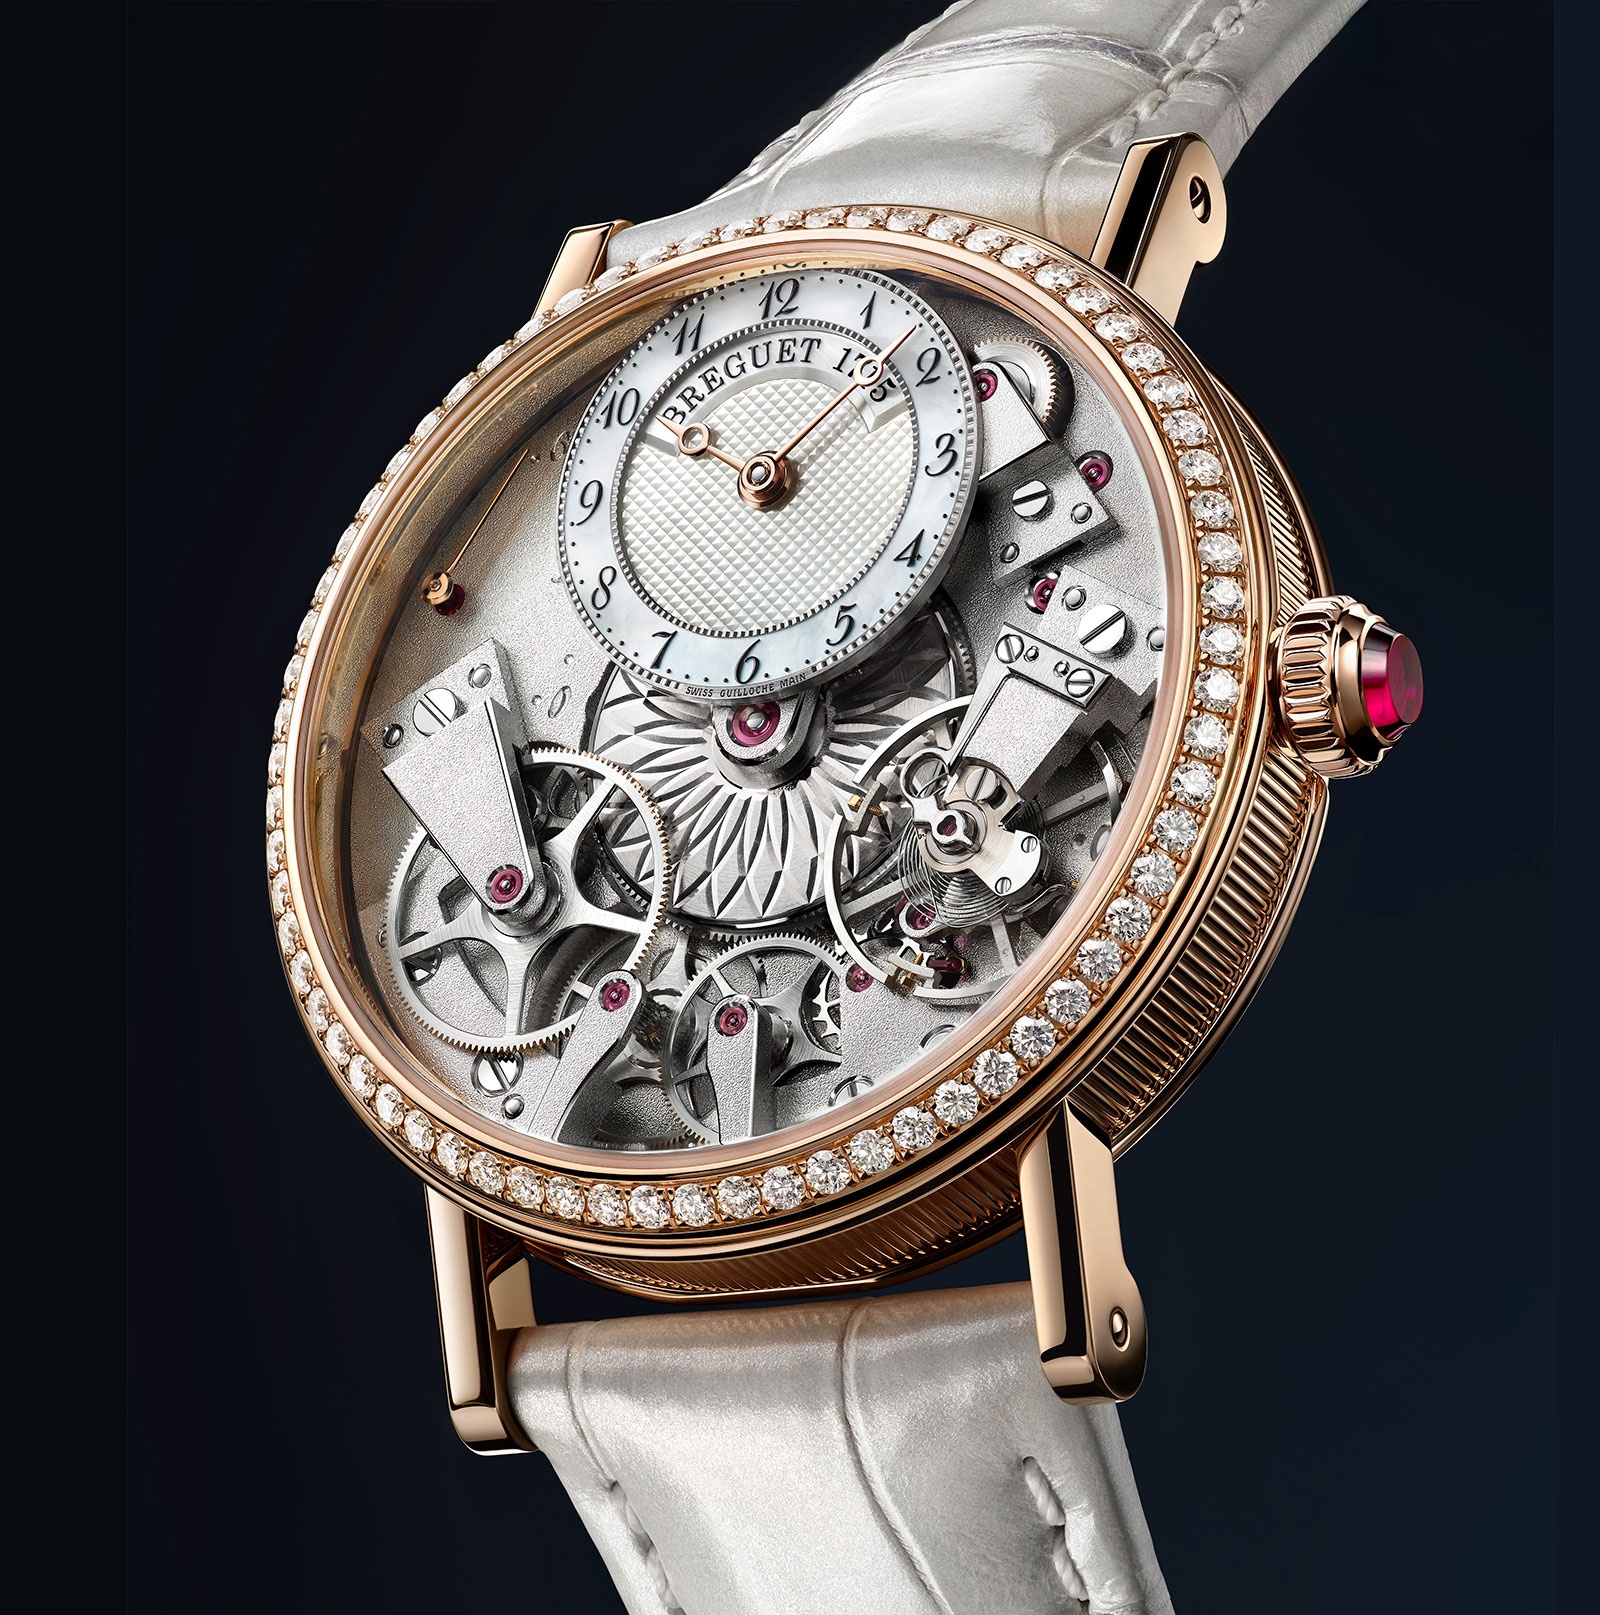 Breguet Tradition Dame 7038 rose gold 2